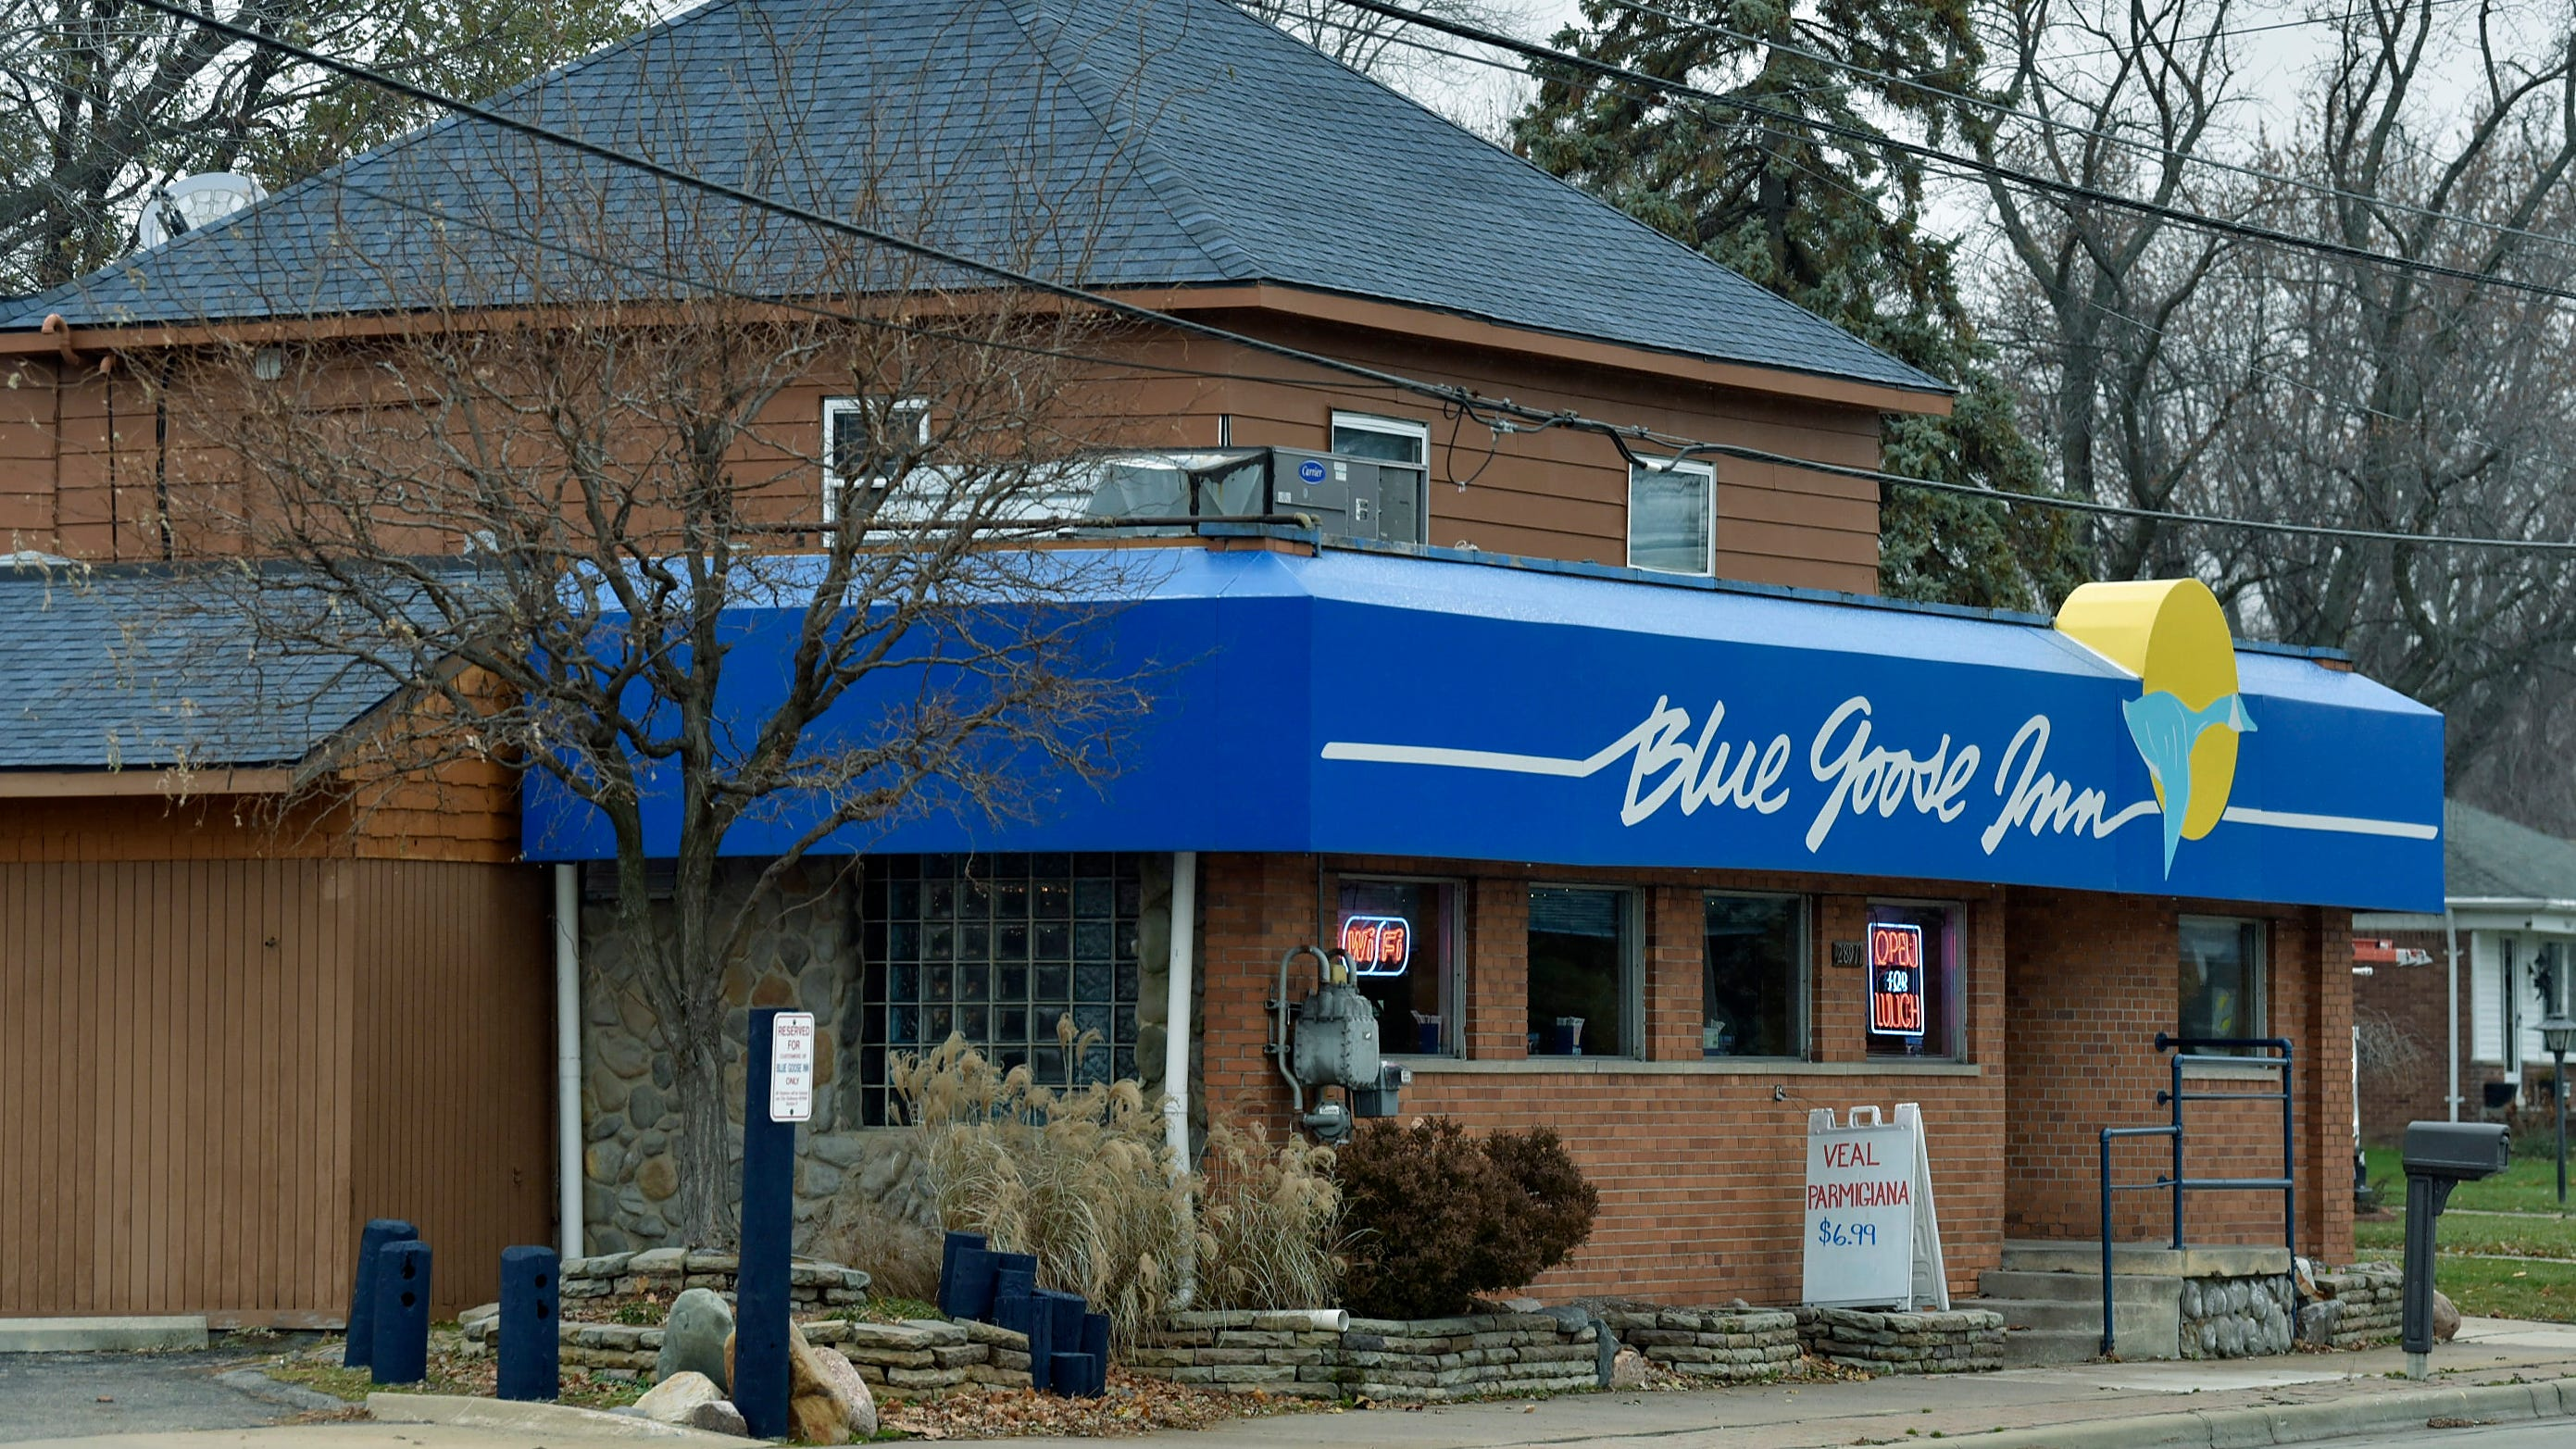 The Blue Goose Inn at 28911 Jefferson  in St. Clair Shores opened in 1910 as a saloon and grocery store.